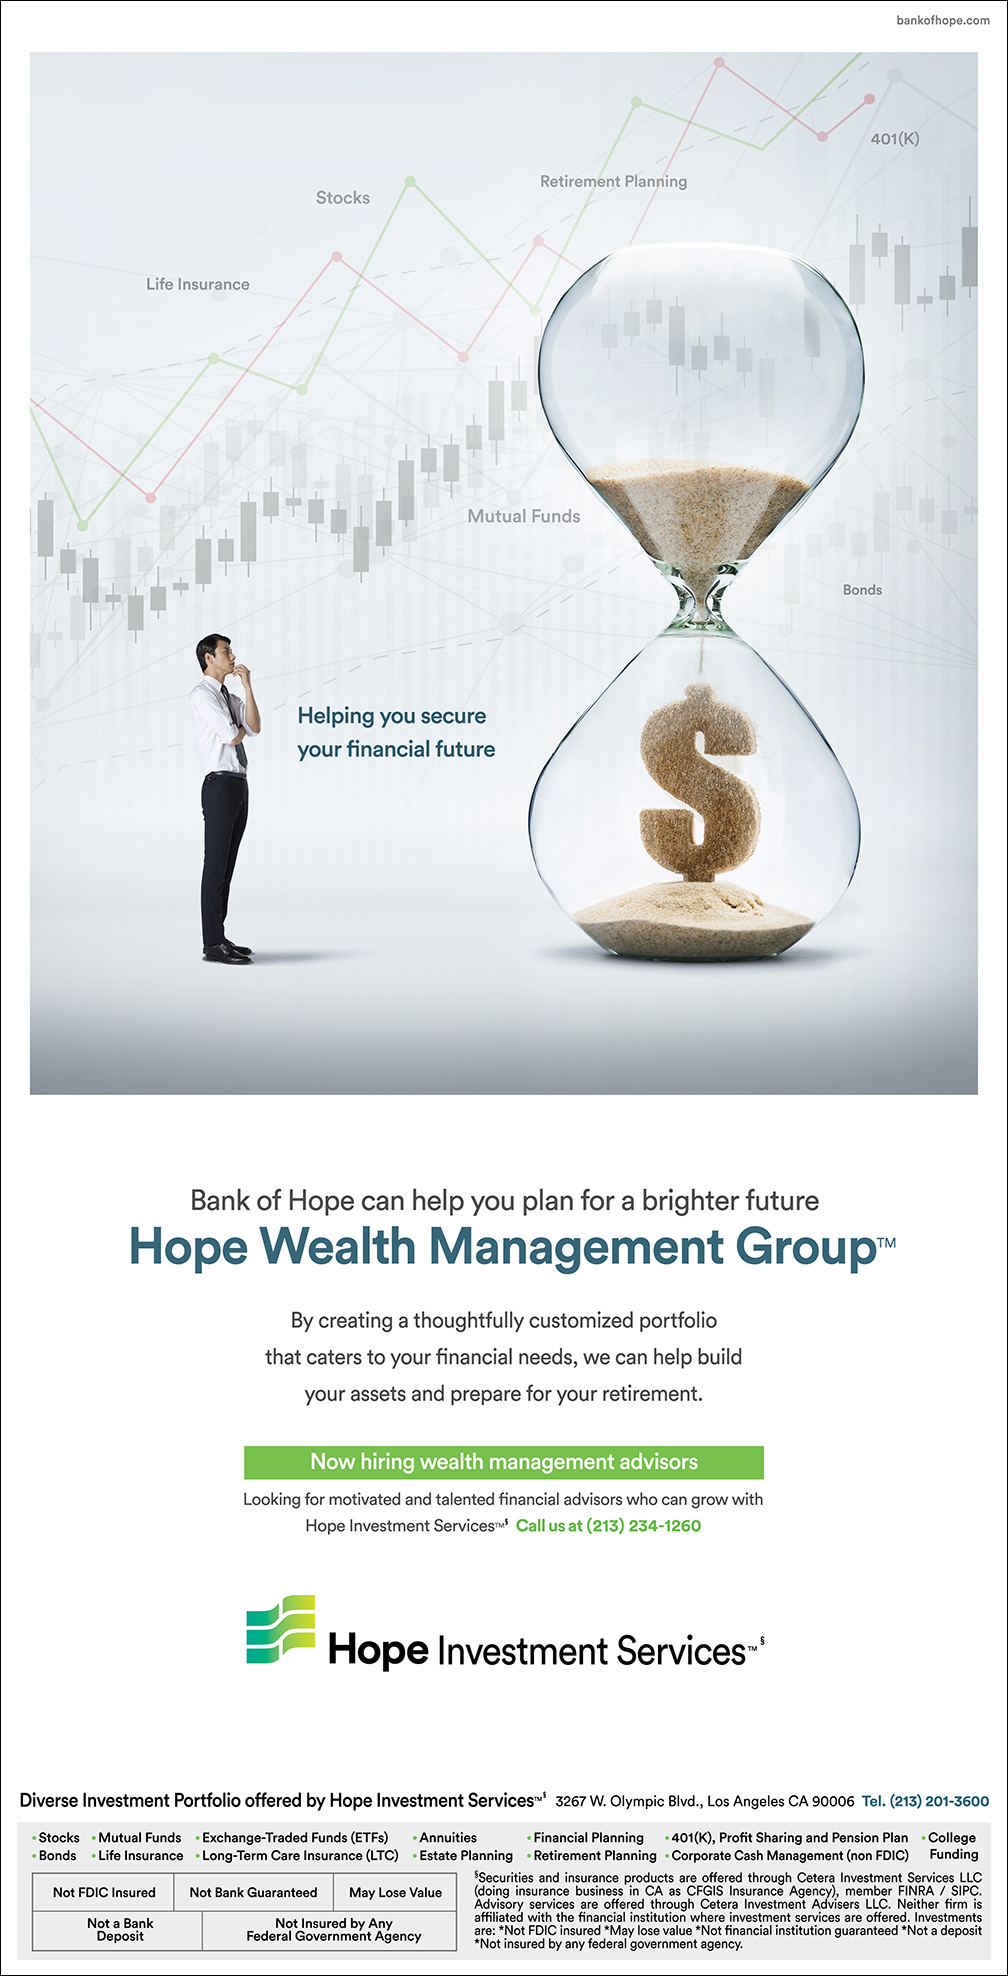 BOH_Wealth Management_050818